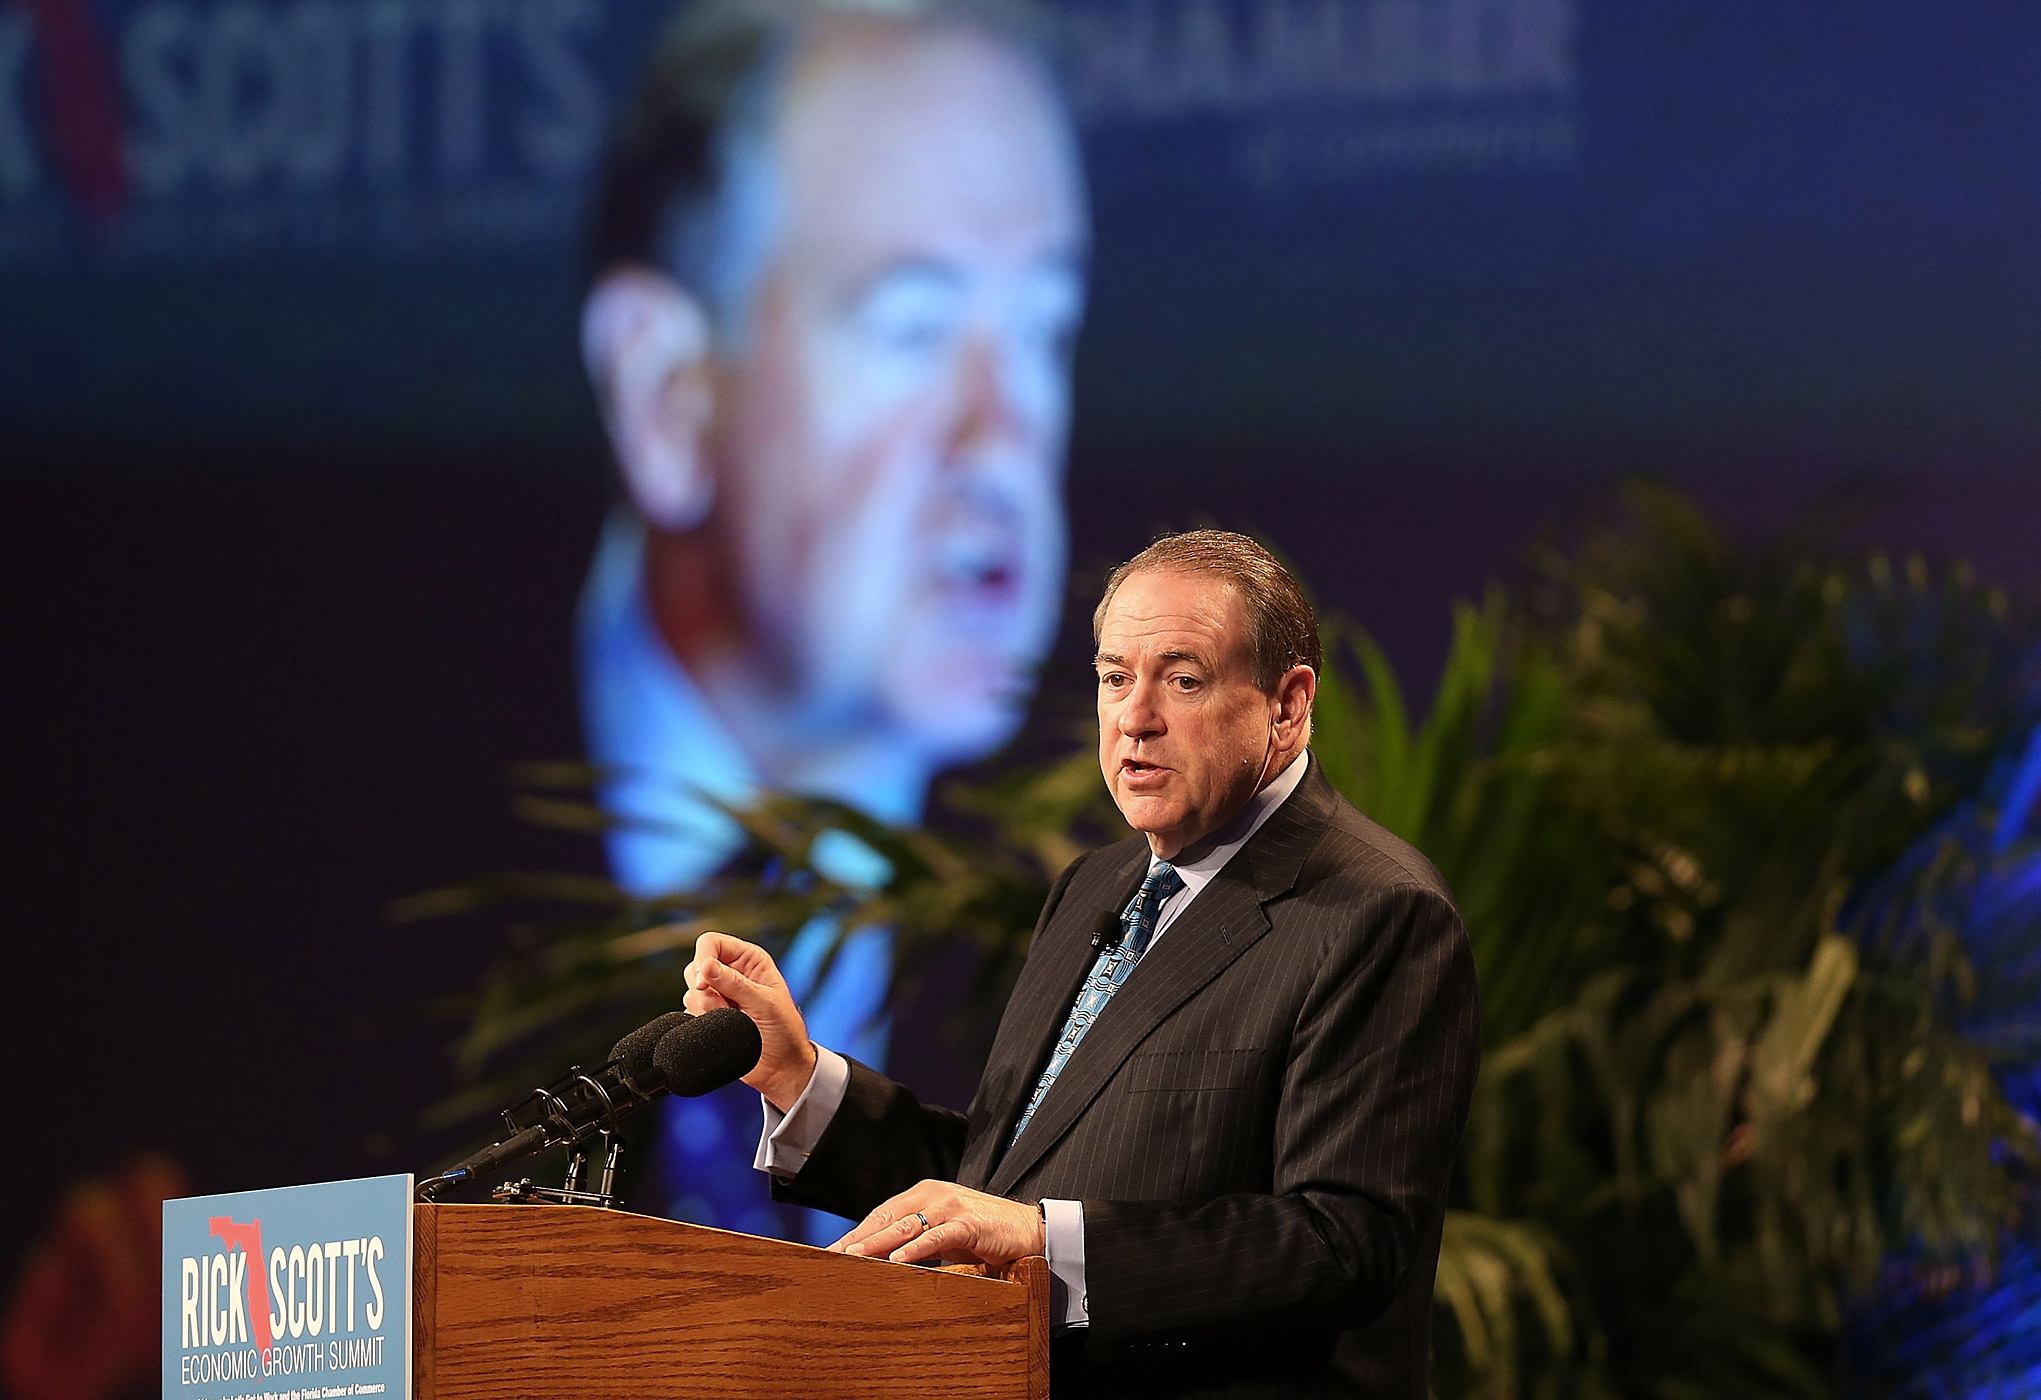 Former Arkansas Governor Mike Huckabee speaks during Rick Scott's Economic Growth Summit held at Disney's Yacht and Beach Club Convention Center on June 2, 2015 in Orlando, Fla.